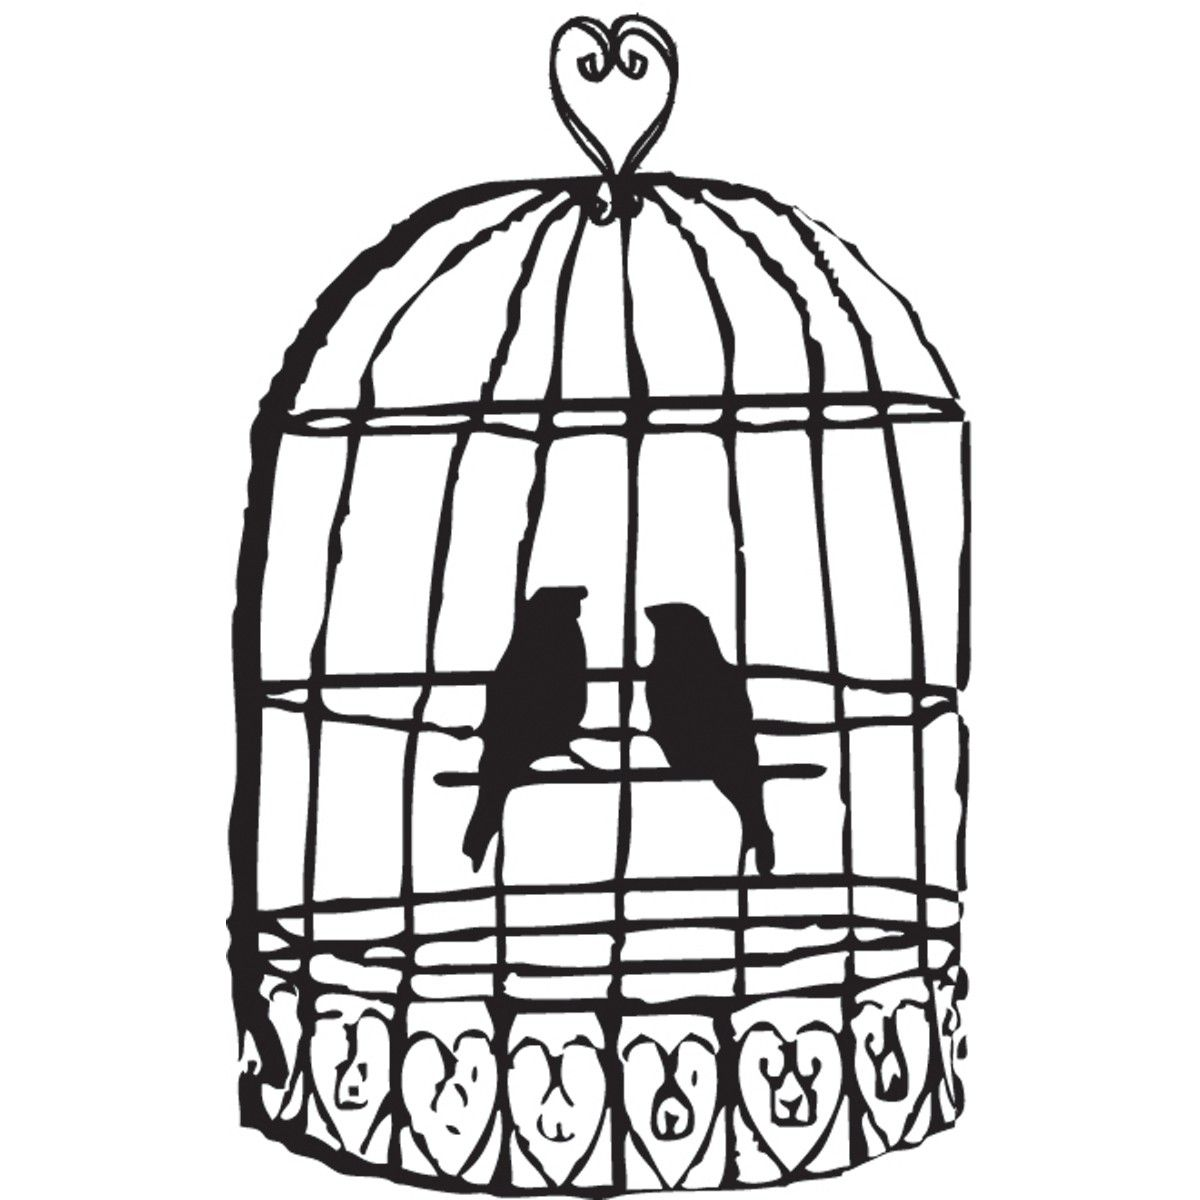 Vintage Birdcage Drawing At Getdrawings